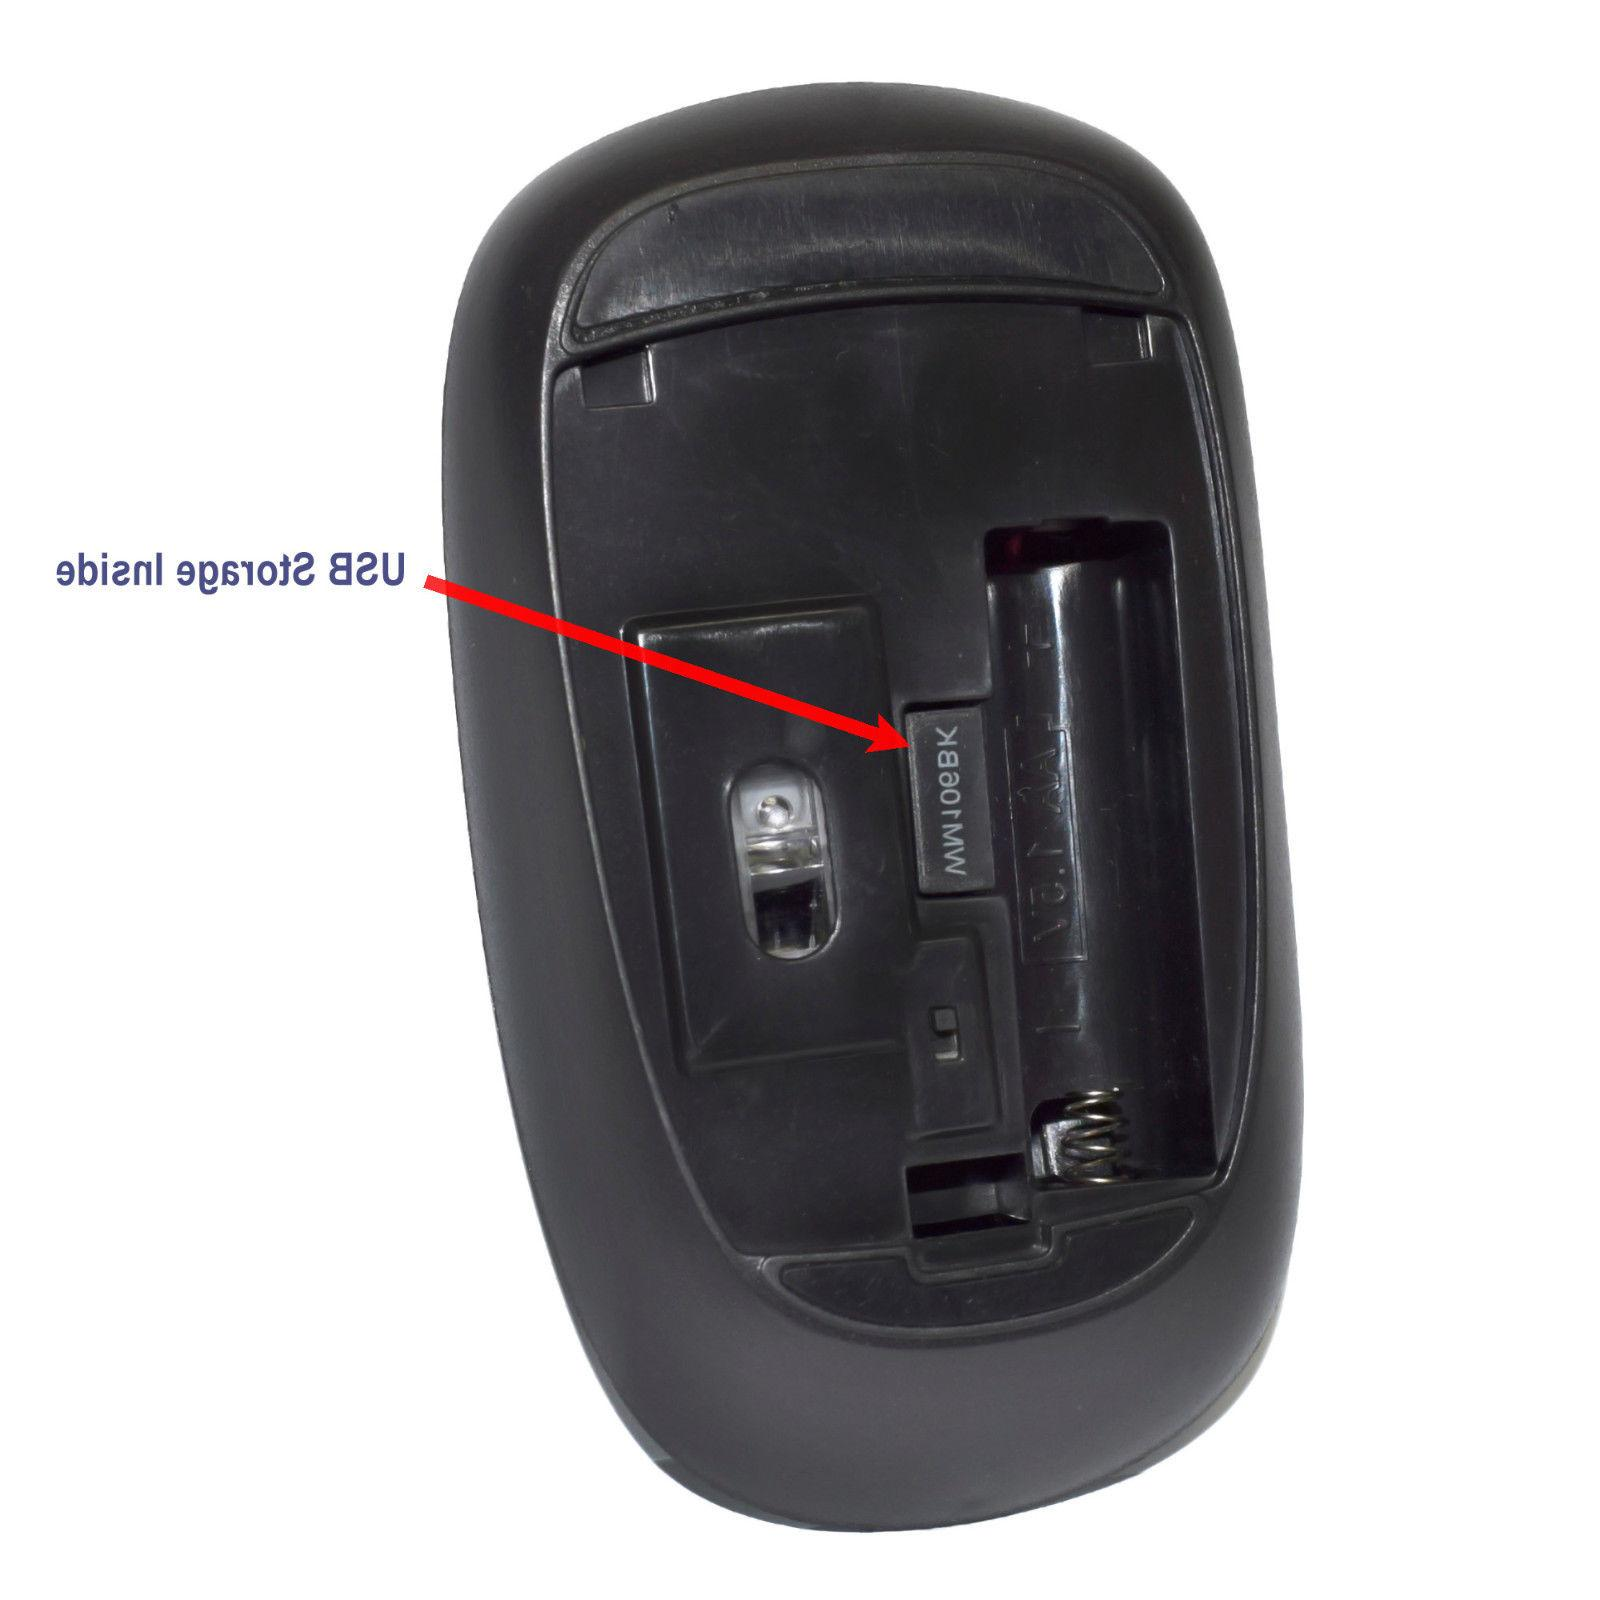 2.4GHz Cordless Mouse USB Receiver for PC